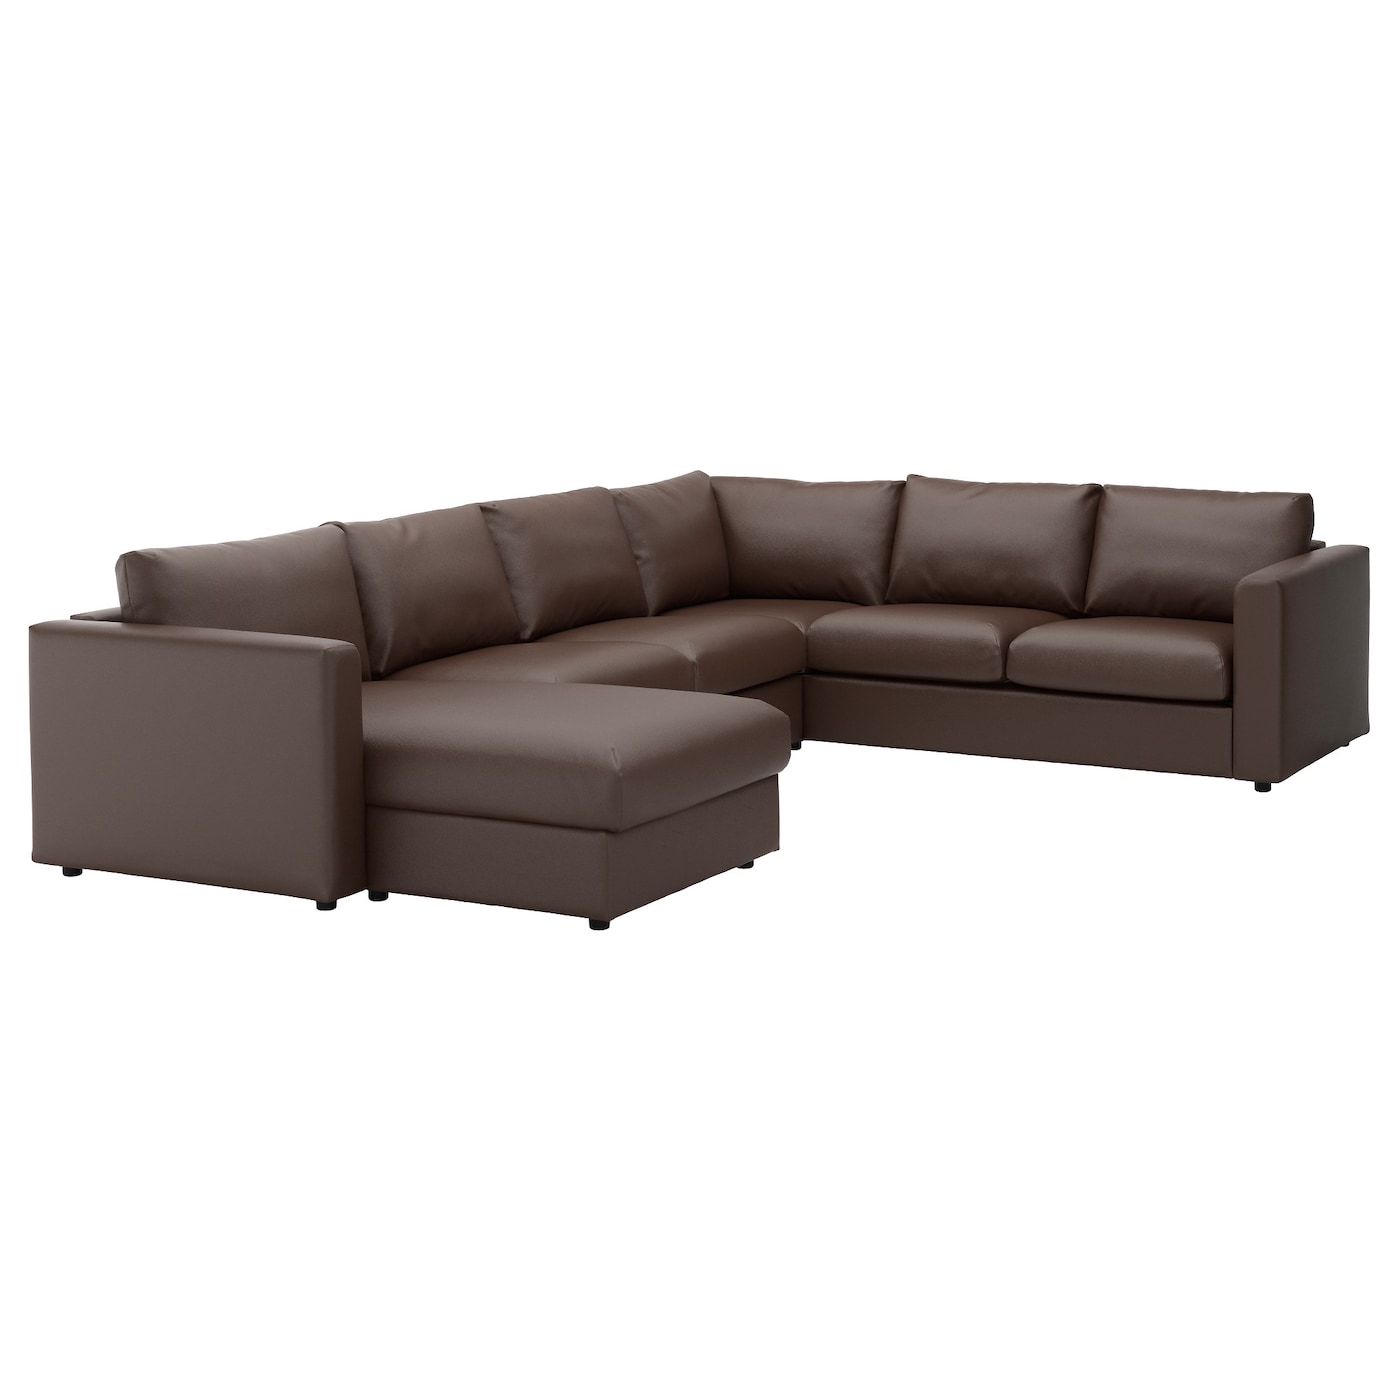 vimle corner sofa 5 seat with chaise longue farsta dark